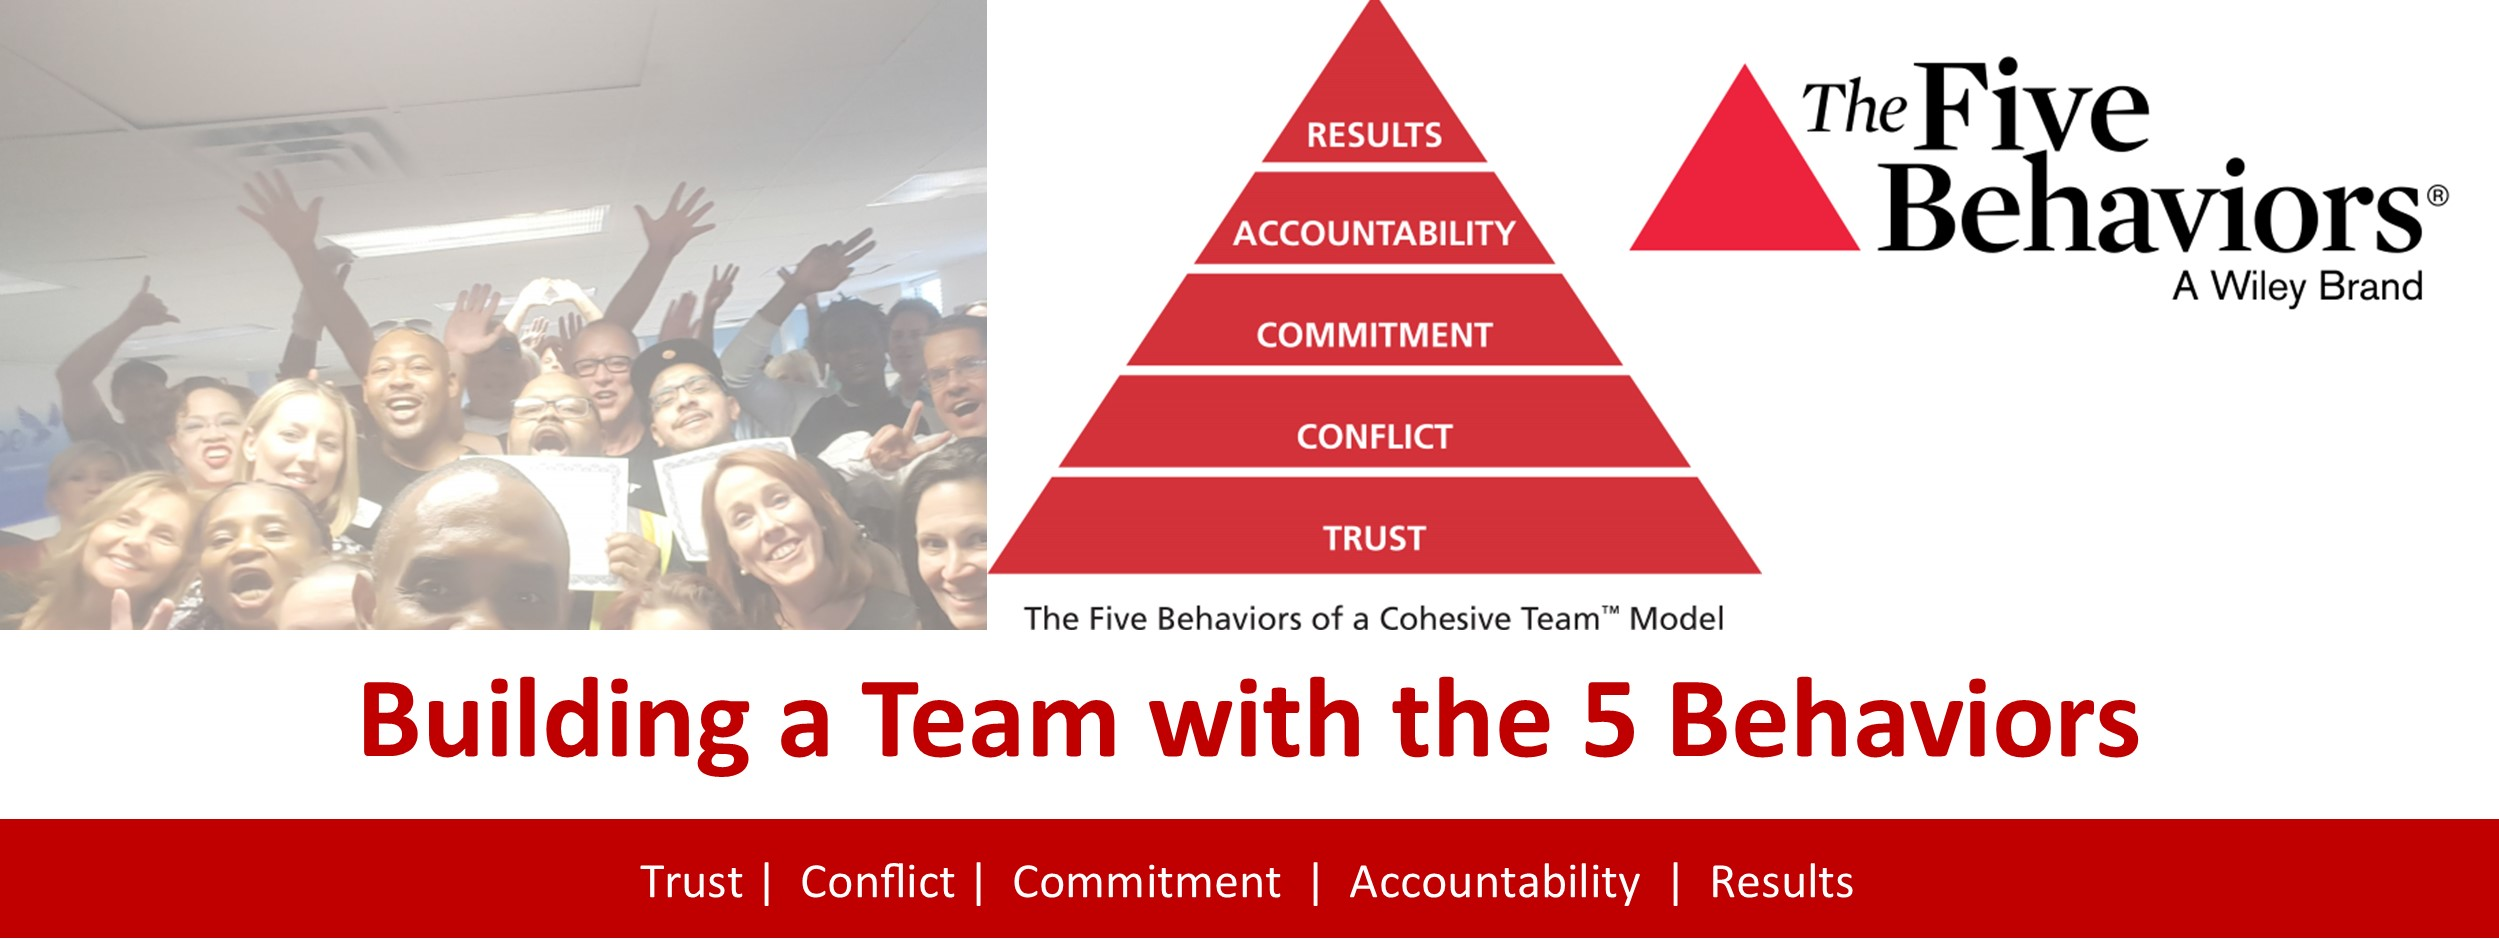 Five Behaviors of a Cohesive Team from Aegis Learning